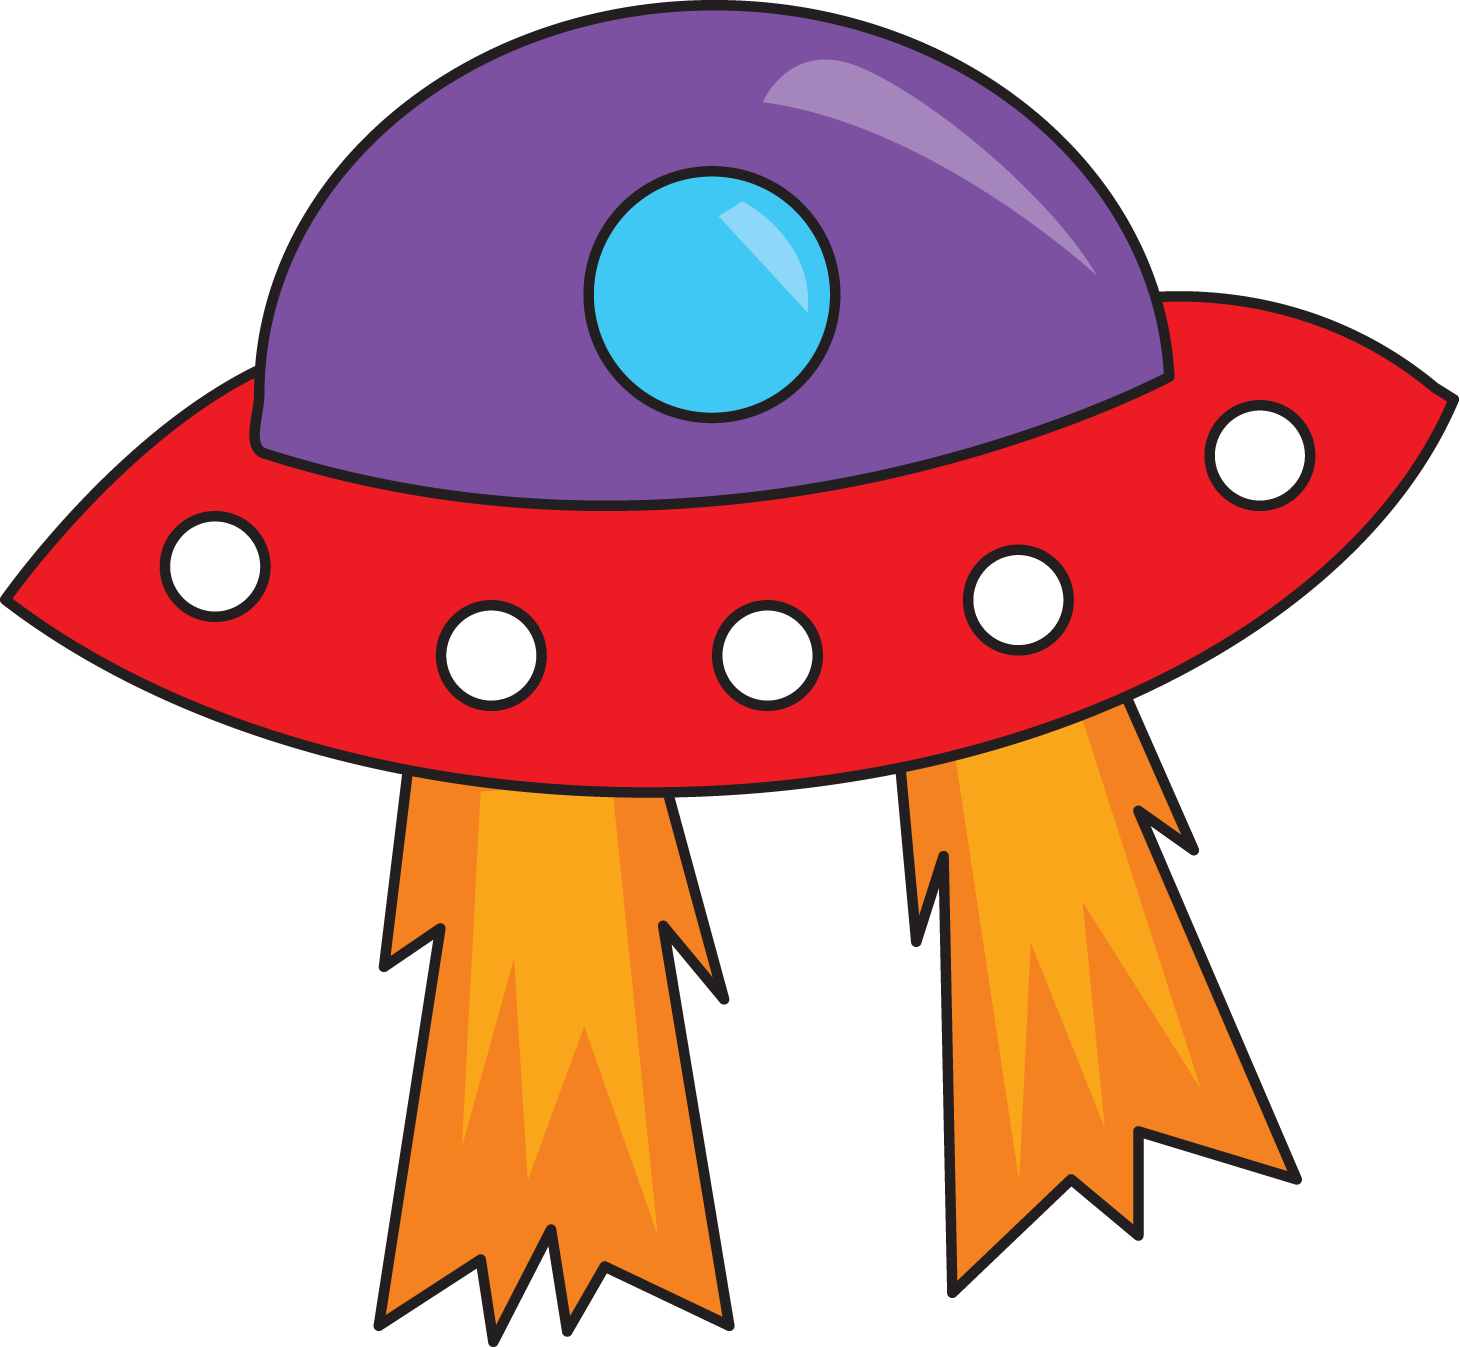 Space clipart #6, Download drawings